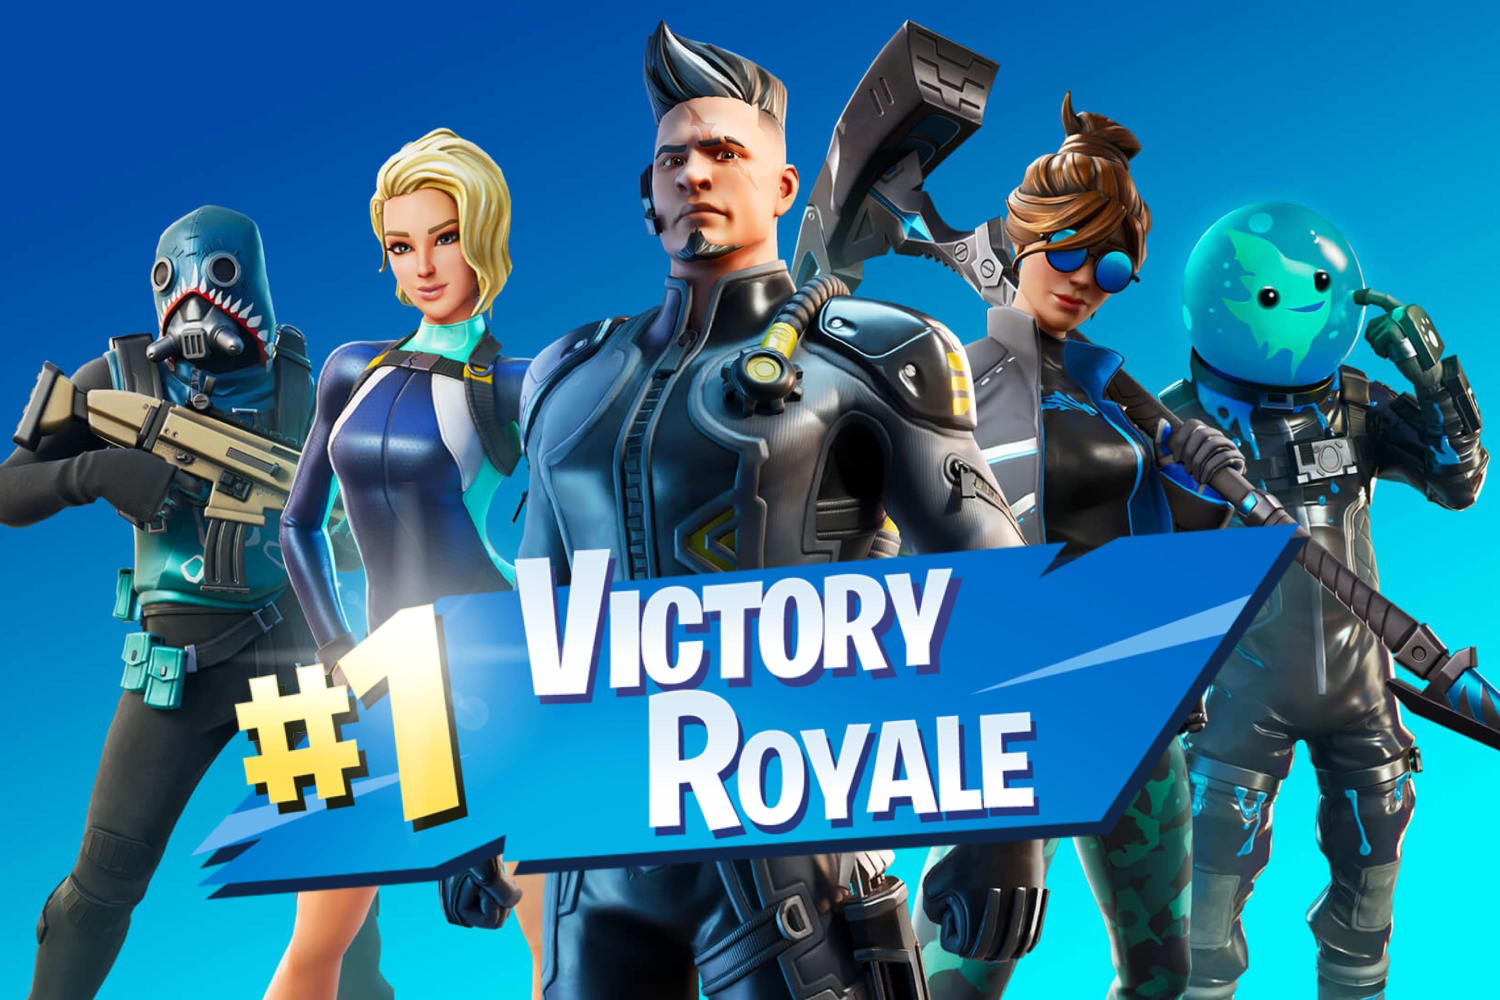 fortnite-developer-epic-games-wins-a-battle-in-their-war-with-apple-20201113-1